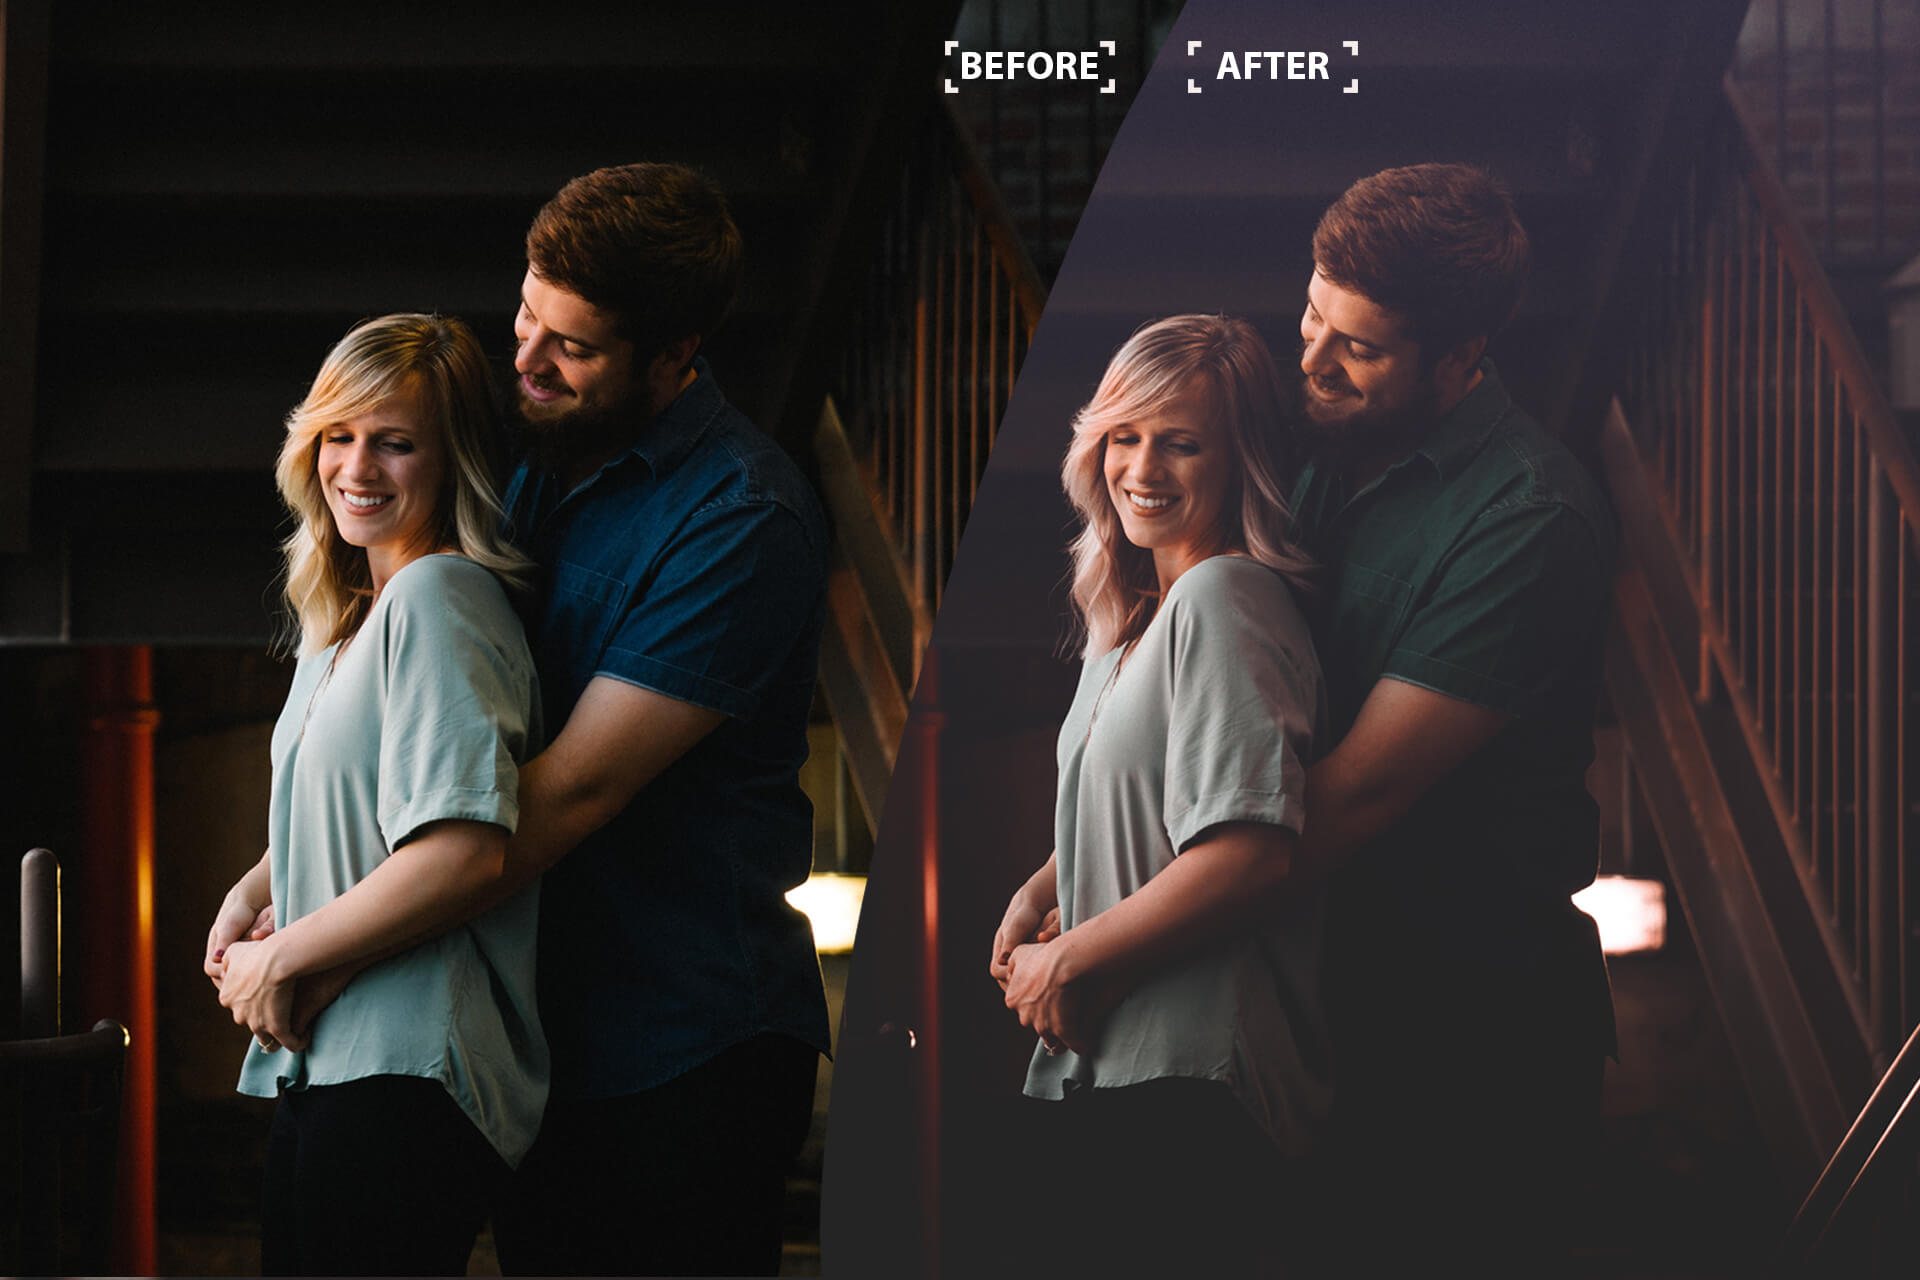 Cinematic Color Grading 01 Premium photoshop action example image 3